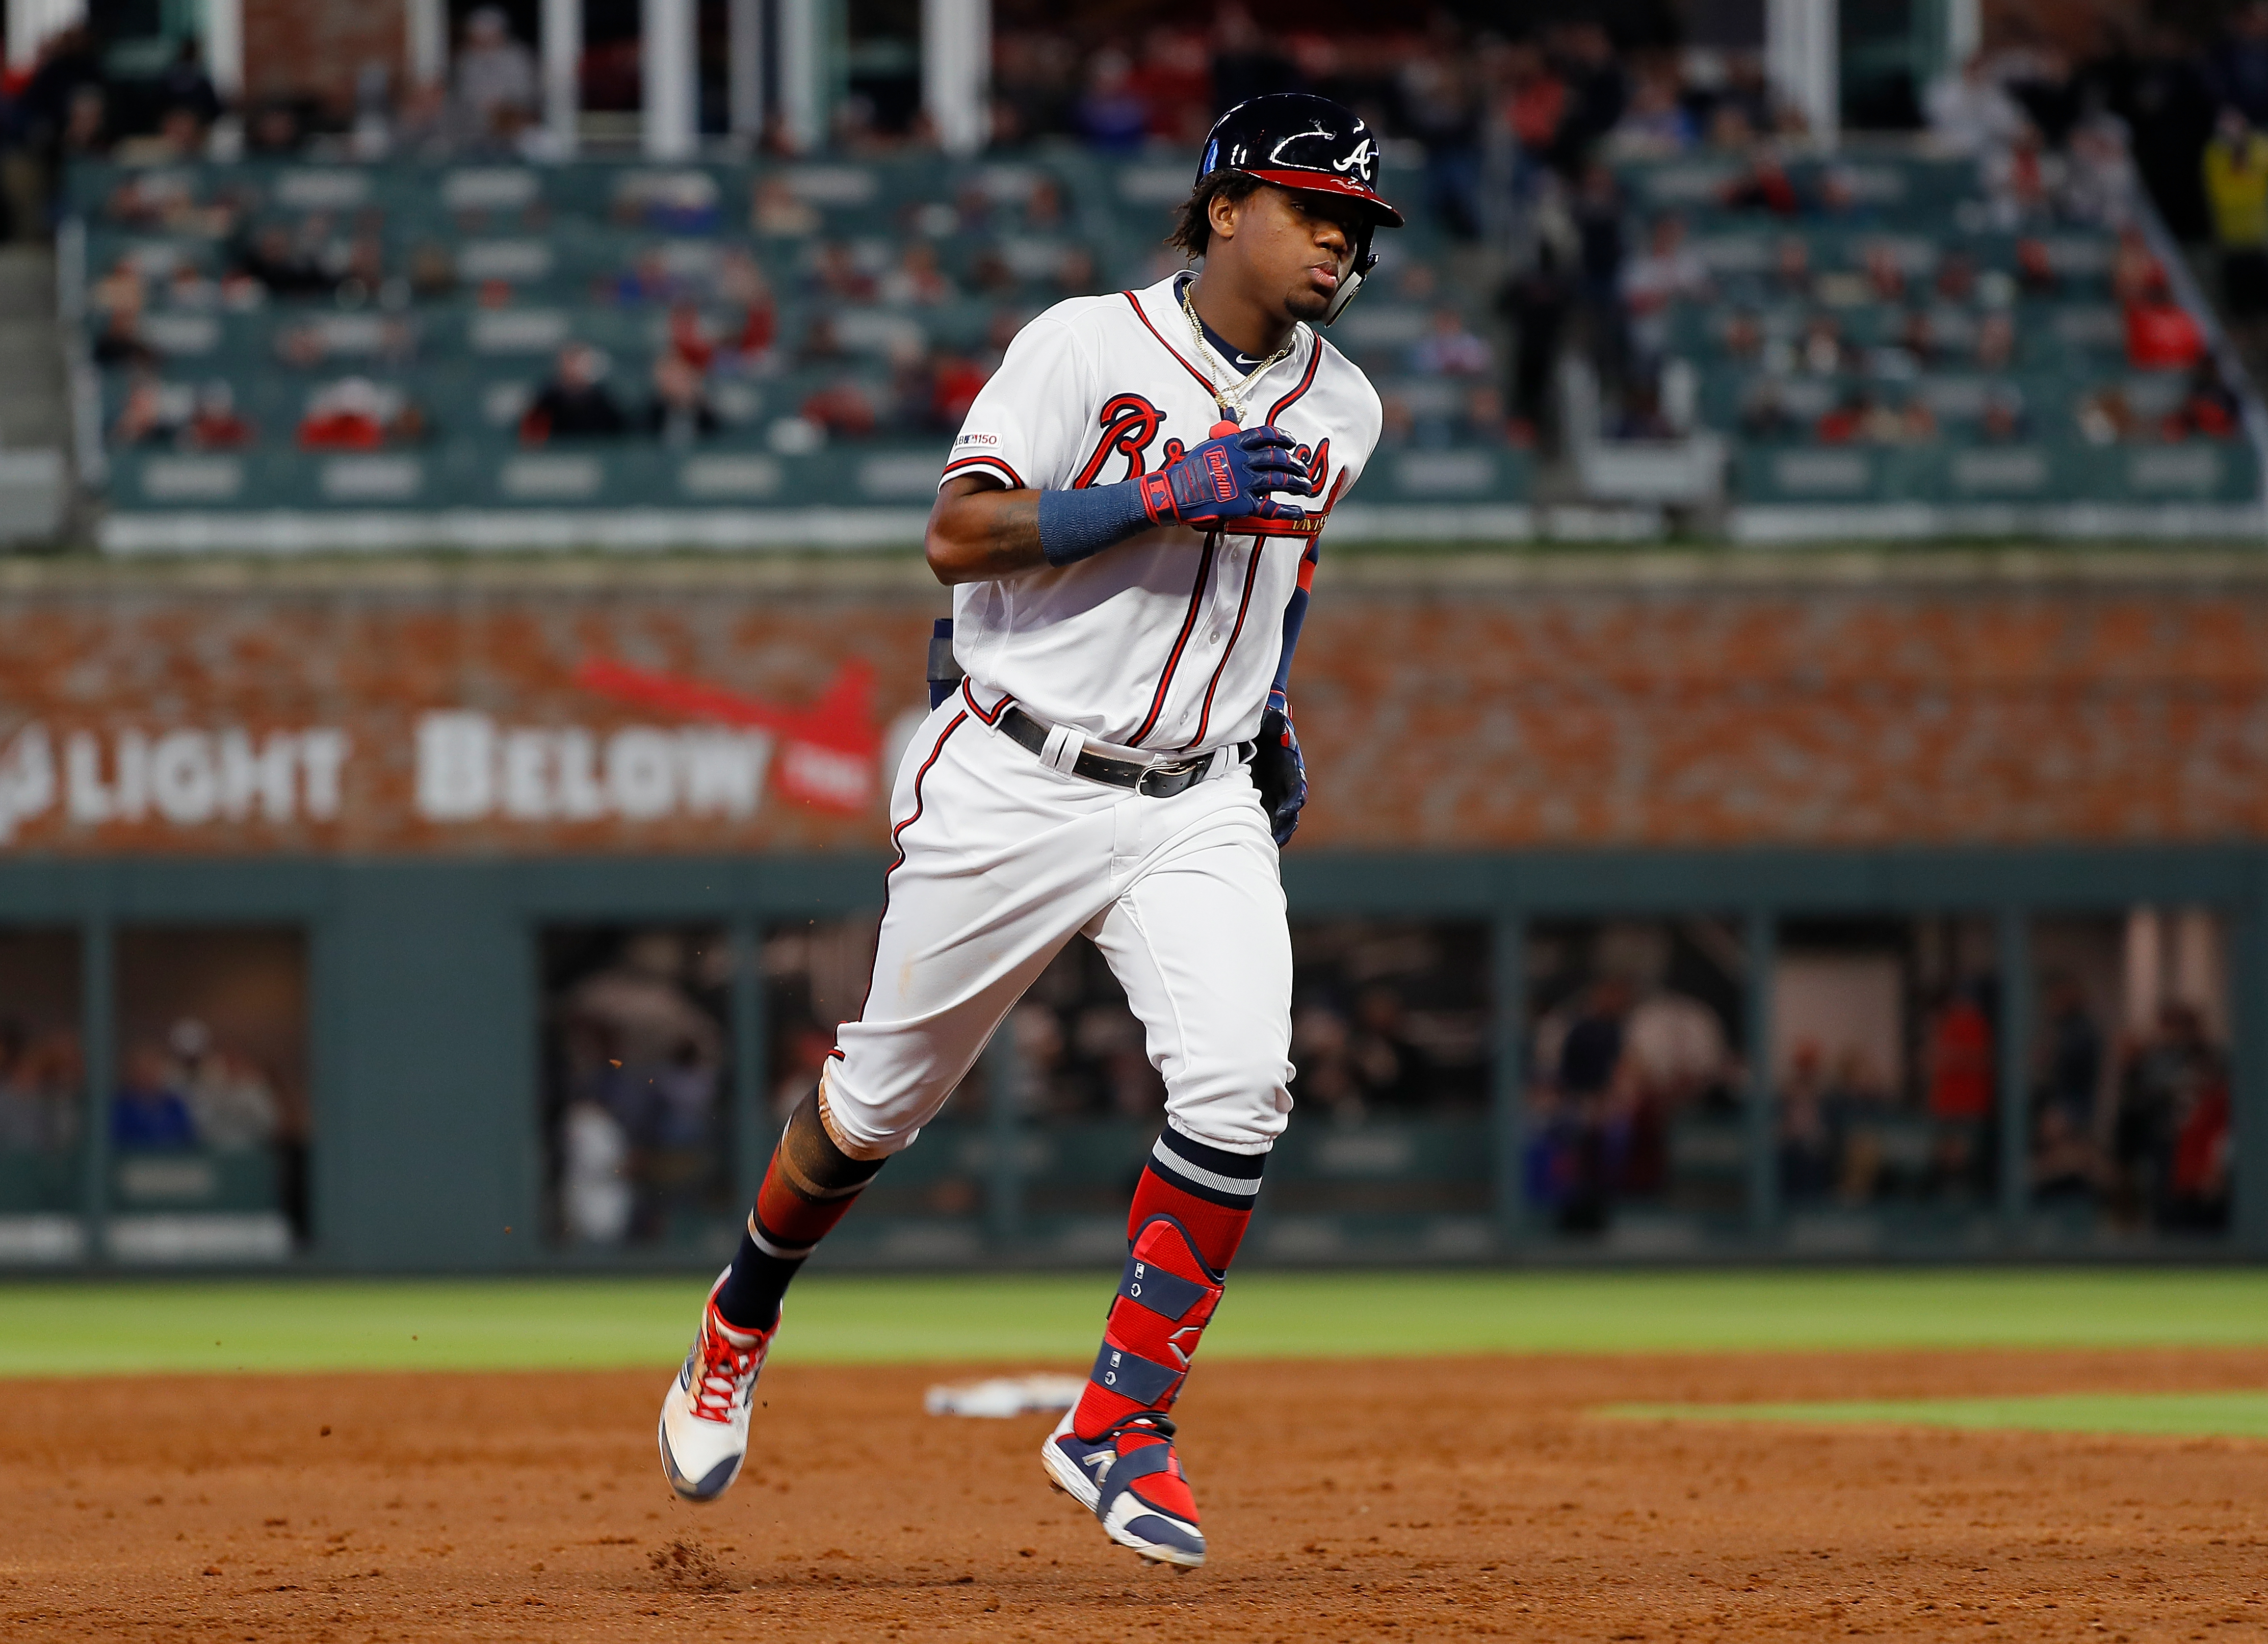 online store f9397 8f882 Ronald Acuna Jr., 21, Braves make history with $100 million ...